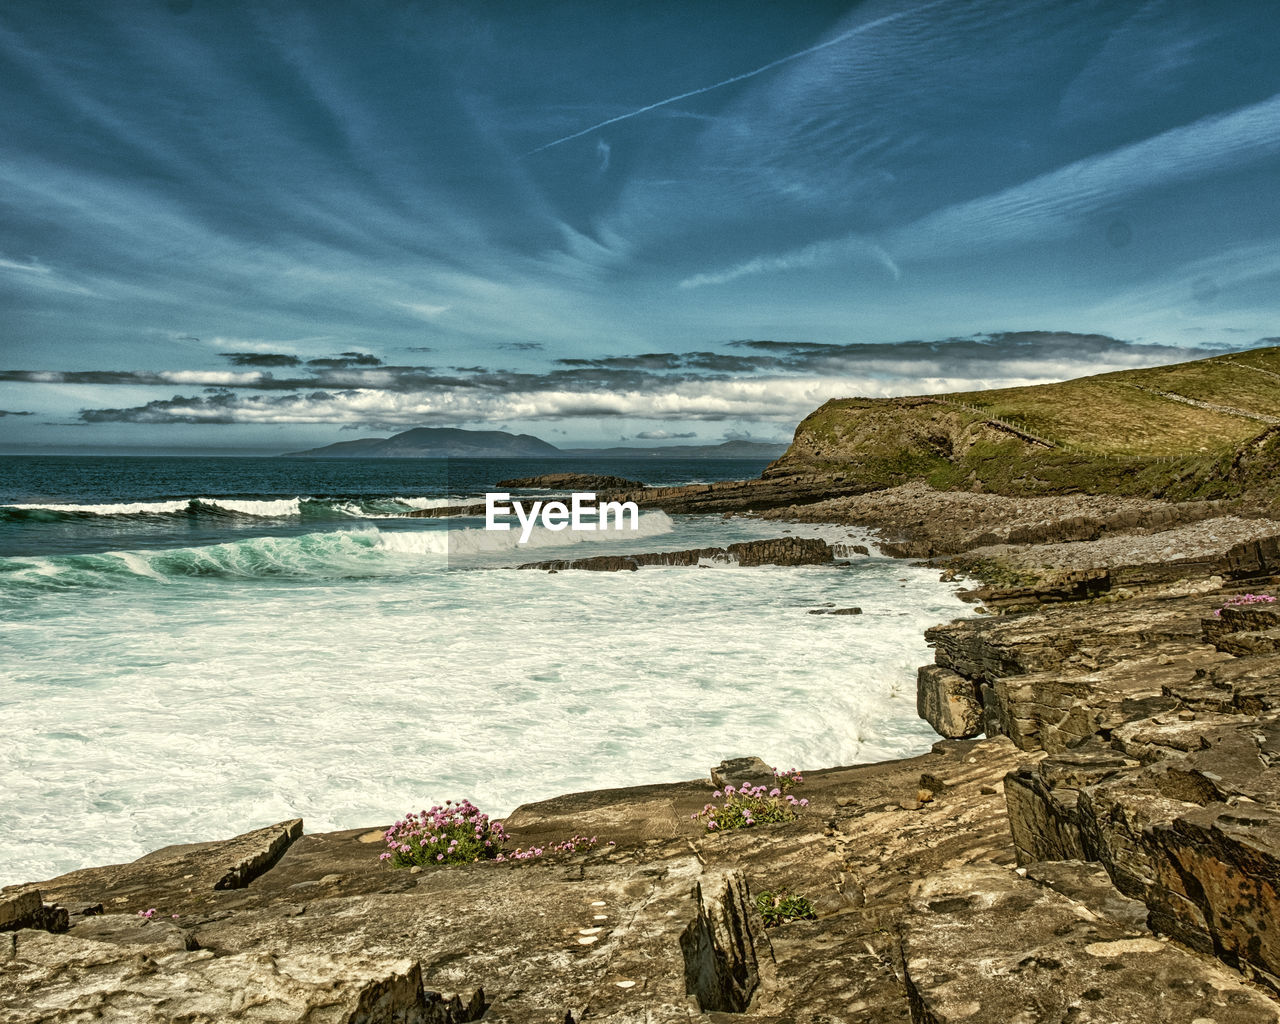 water, sea, sky, cloud - sky, beauty in nature, scenics - nature, beach, rock, land, nature, rock - object, tranquility, tranquil scene, motion, solid, no people, day, idyllic, outdoors, rocky coastline, flowing water